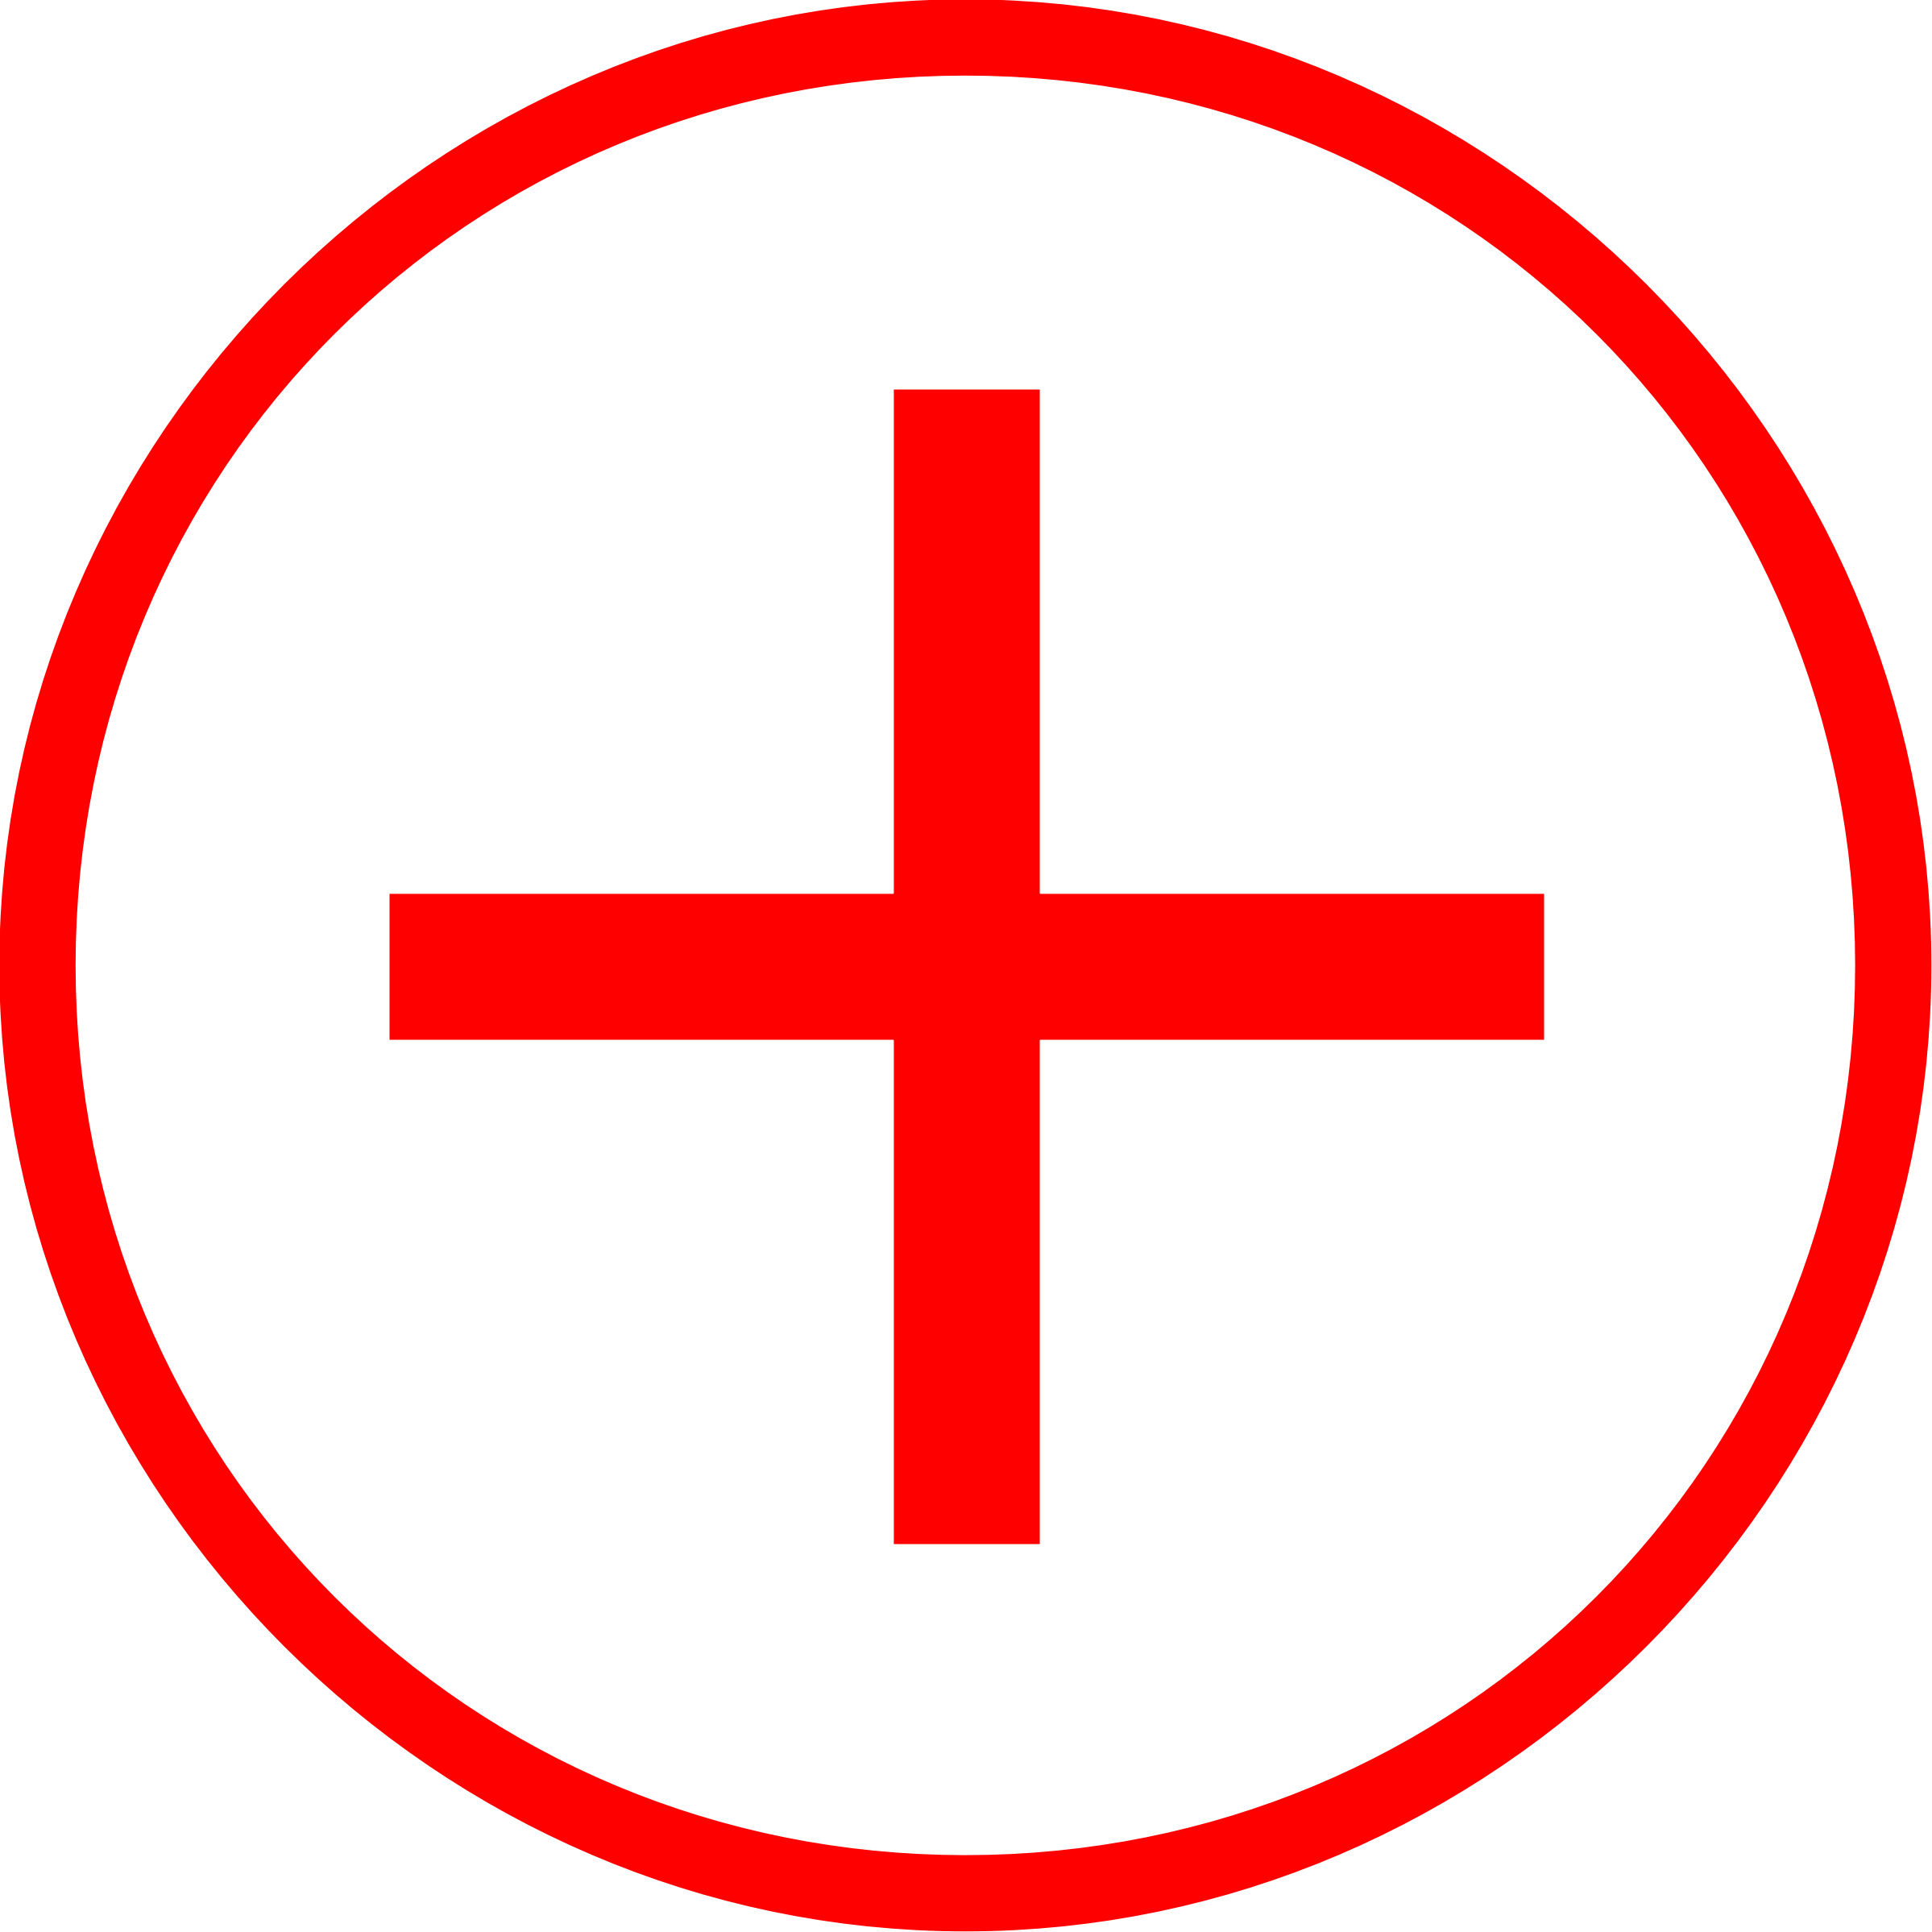 First Aid icon by pnx